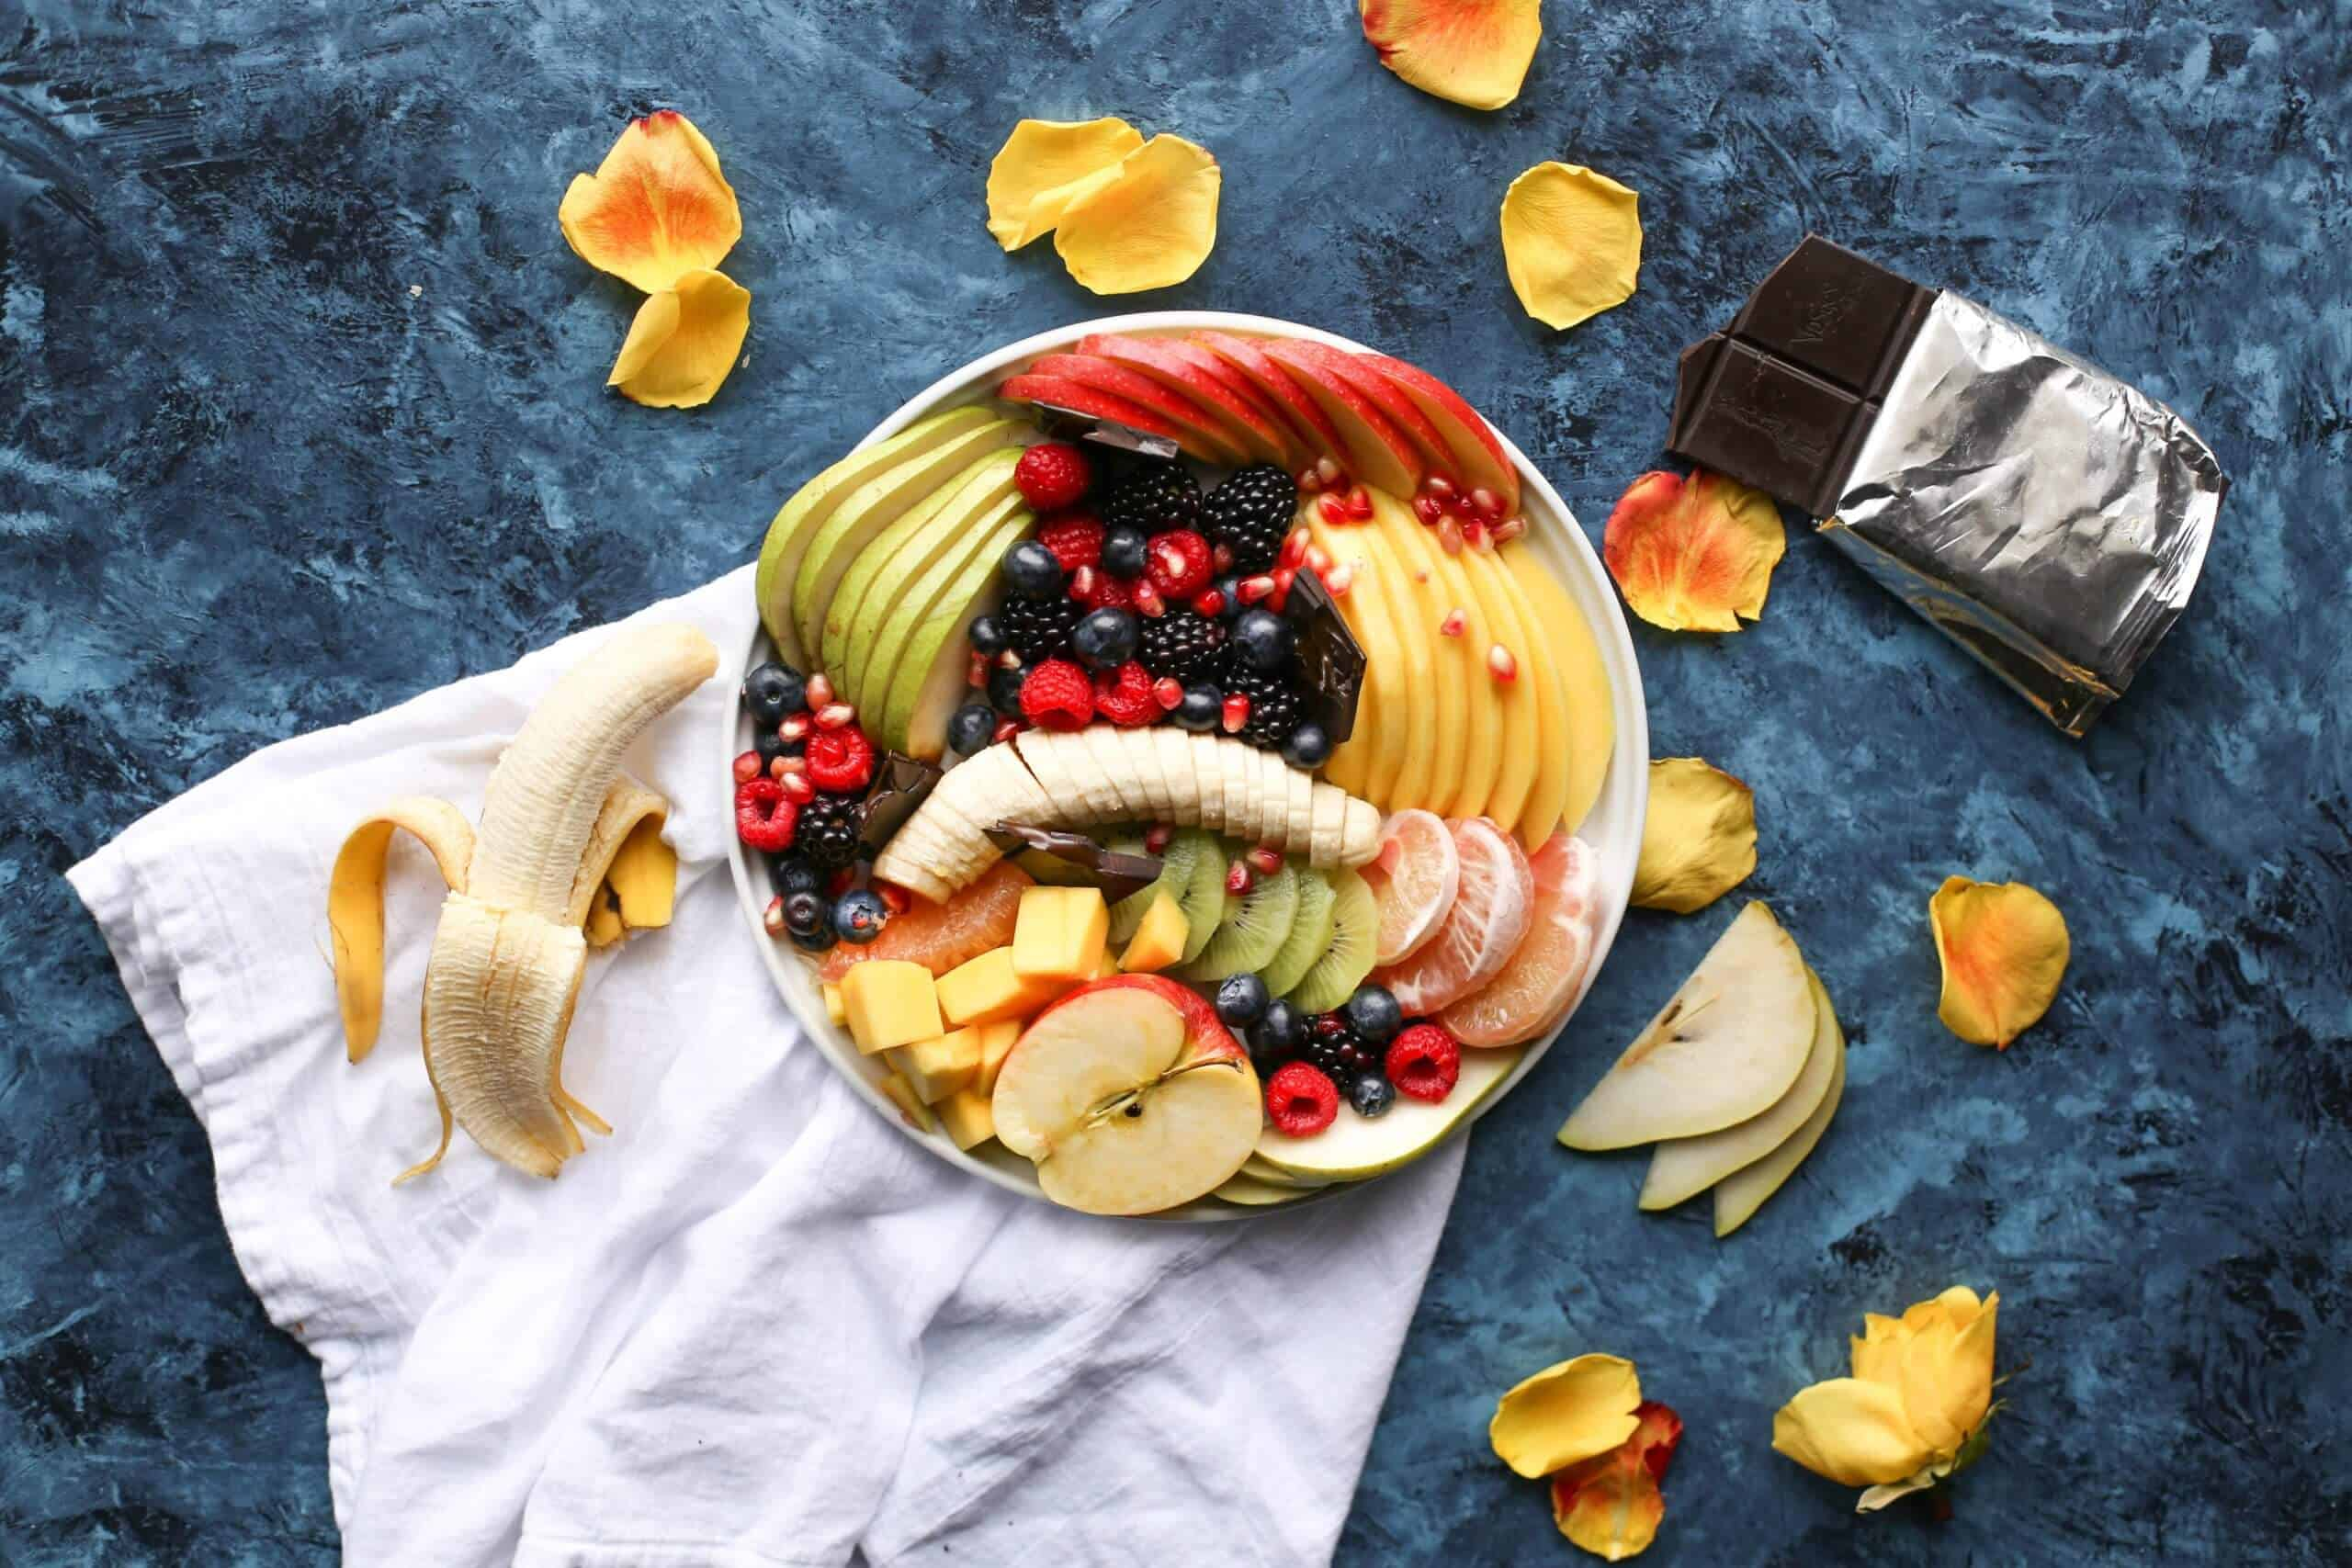 Healthy Foods: The Ideal Diet Foods To Include